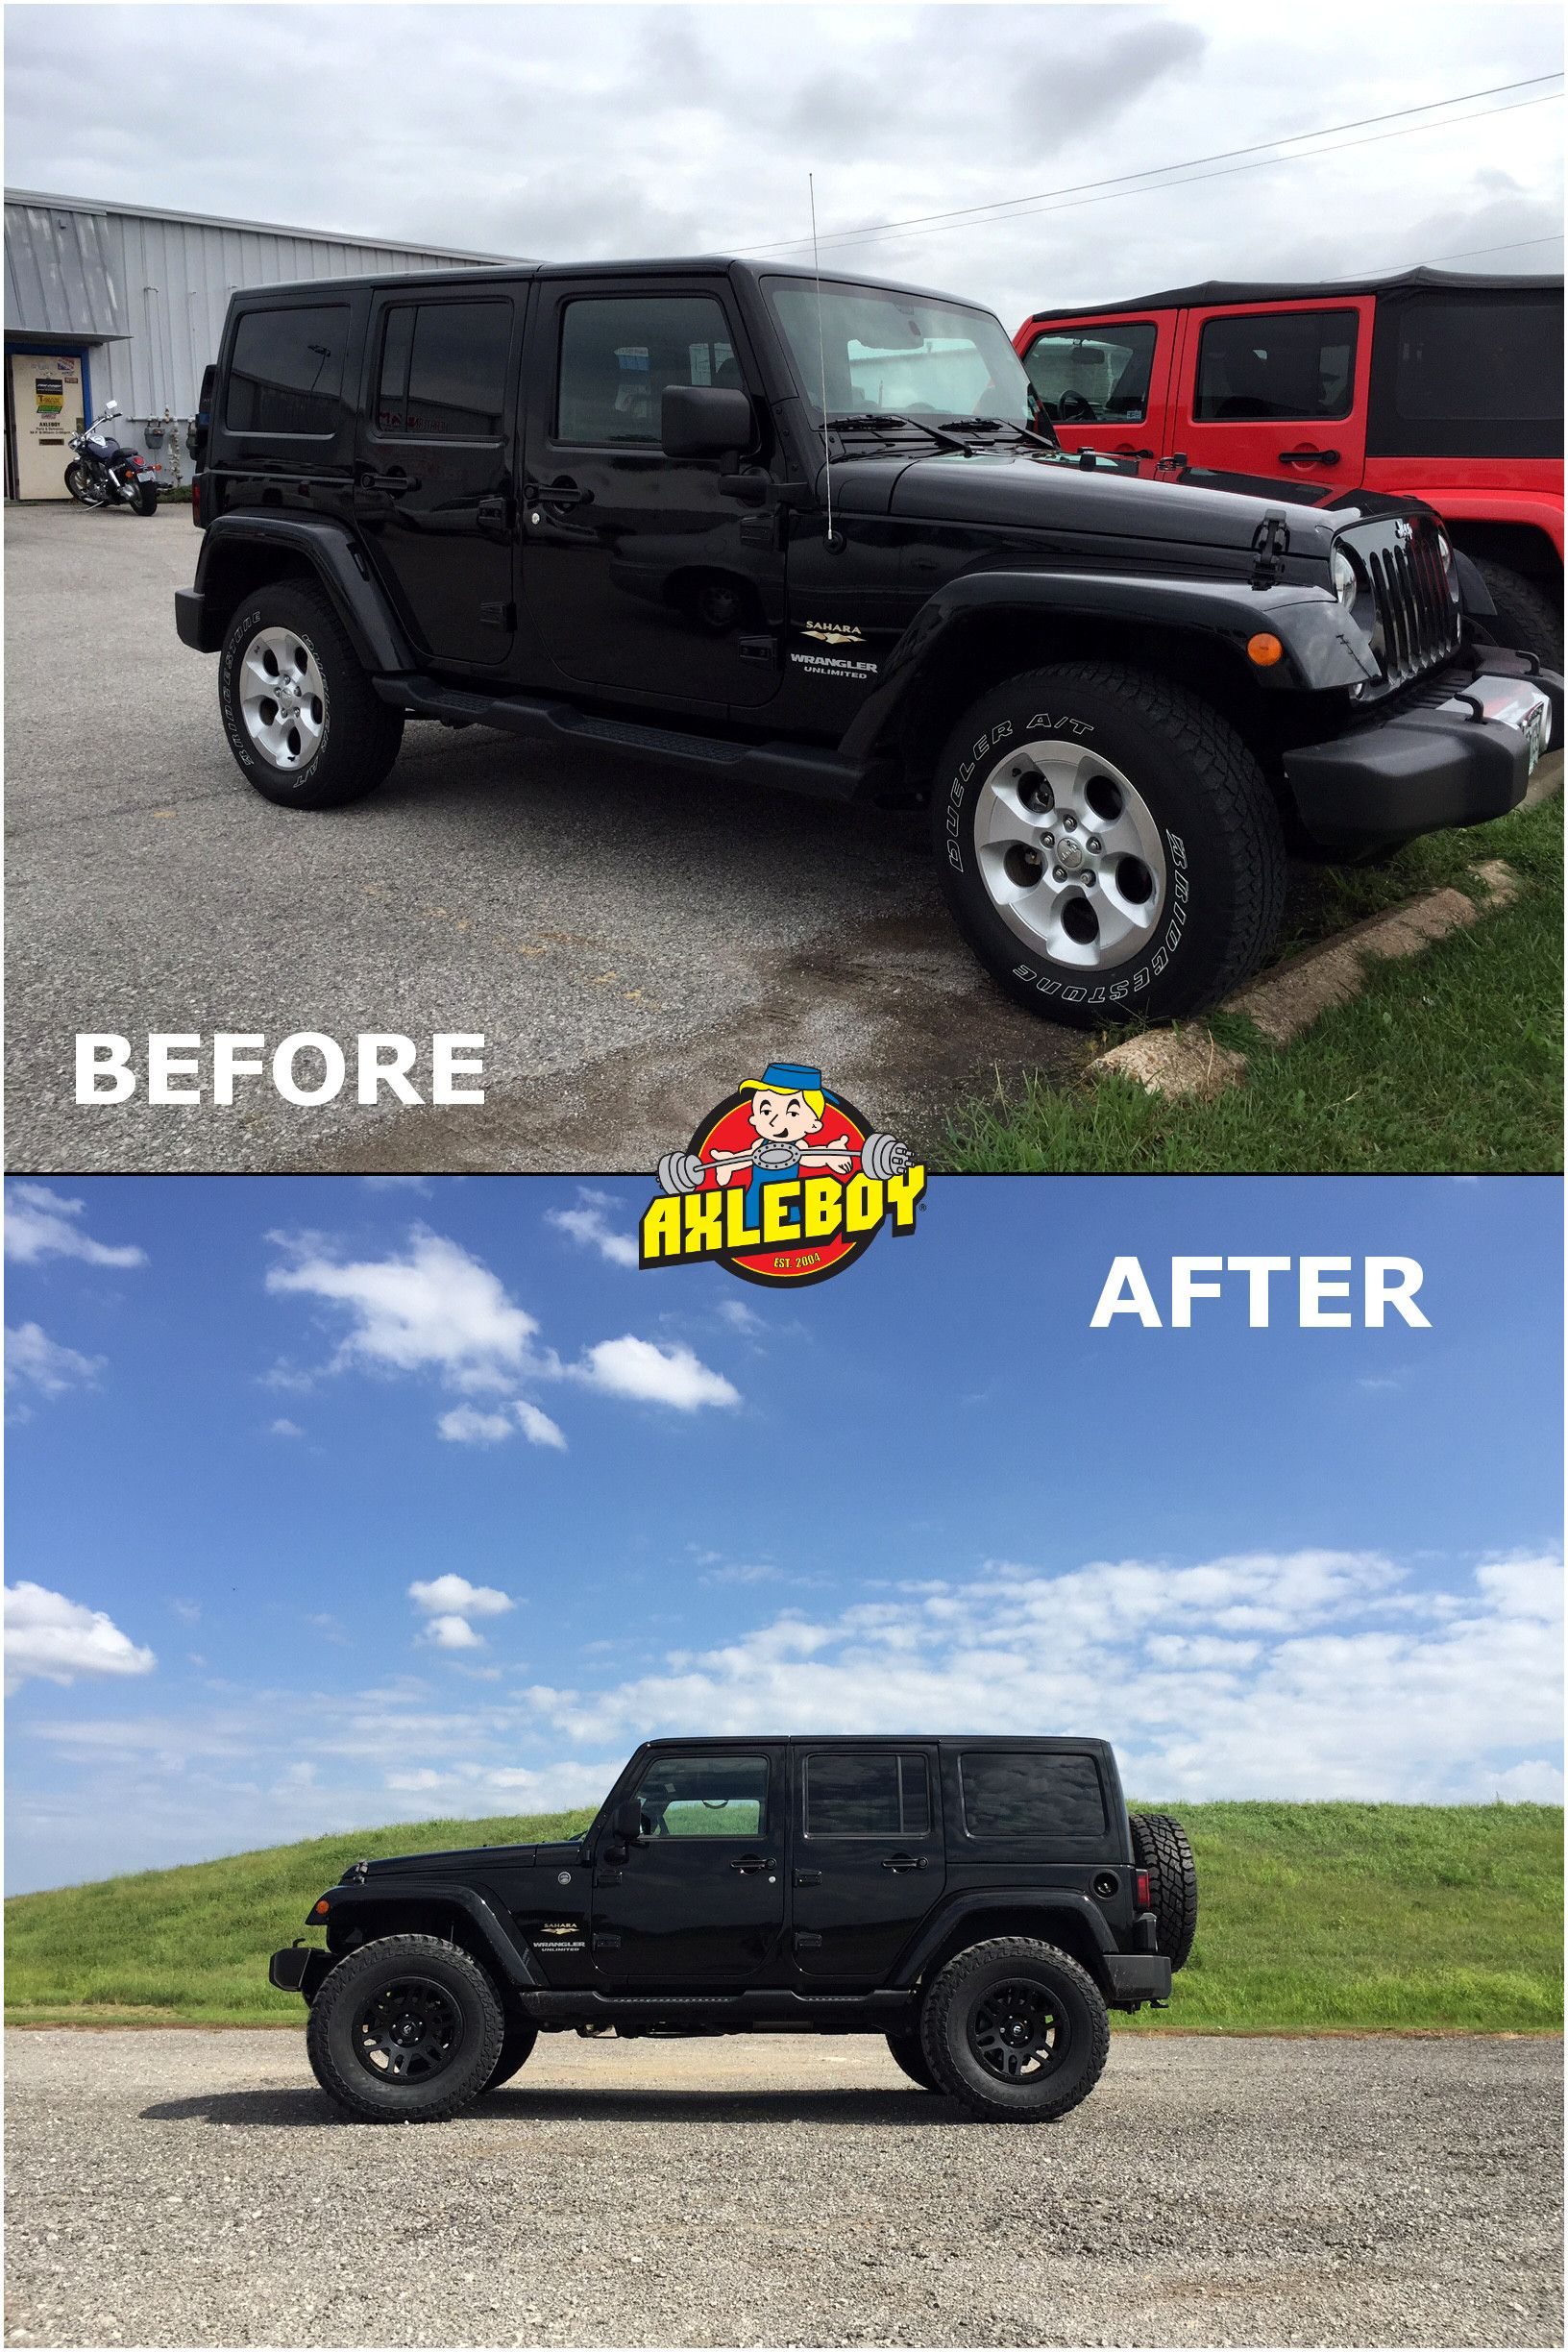 Before And After Pictures Of A 2014 Jeep Wrangler Now With A 2 5 Teraflex Lift 35 Cooper St Black Jeep Wrangler Unlimited Jeep Wrangler Lifted Lifted Jeep